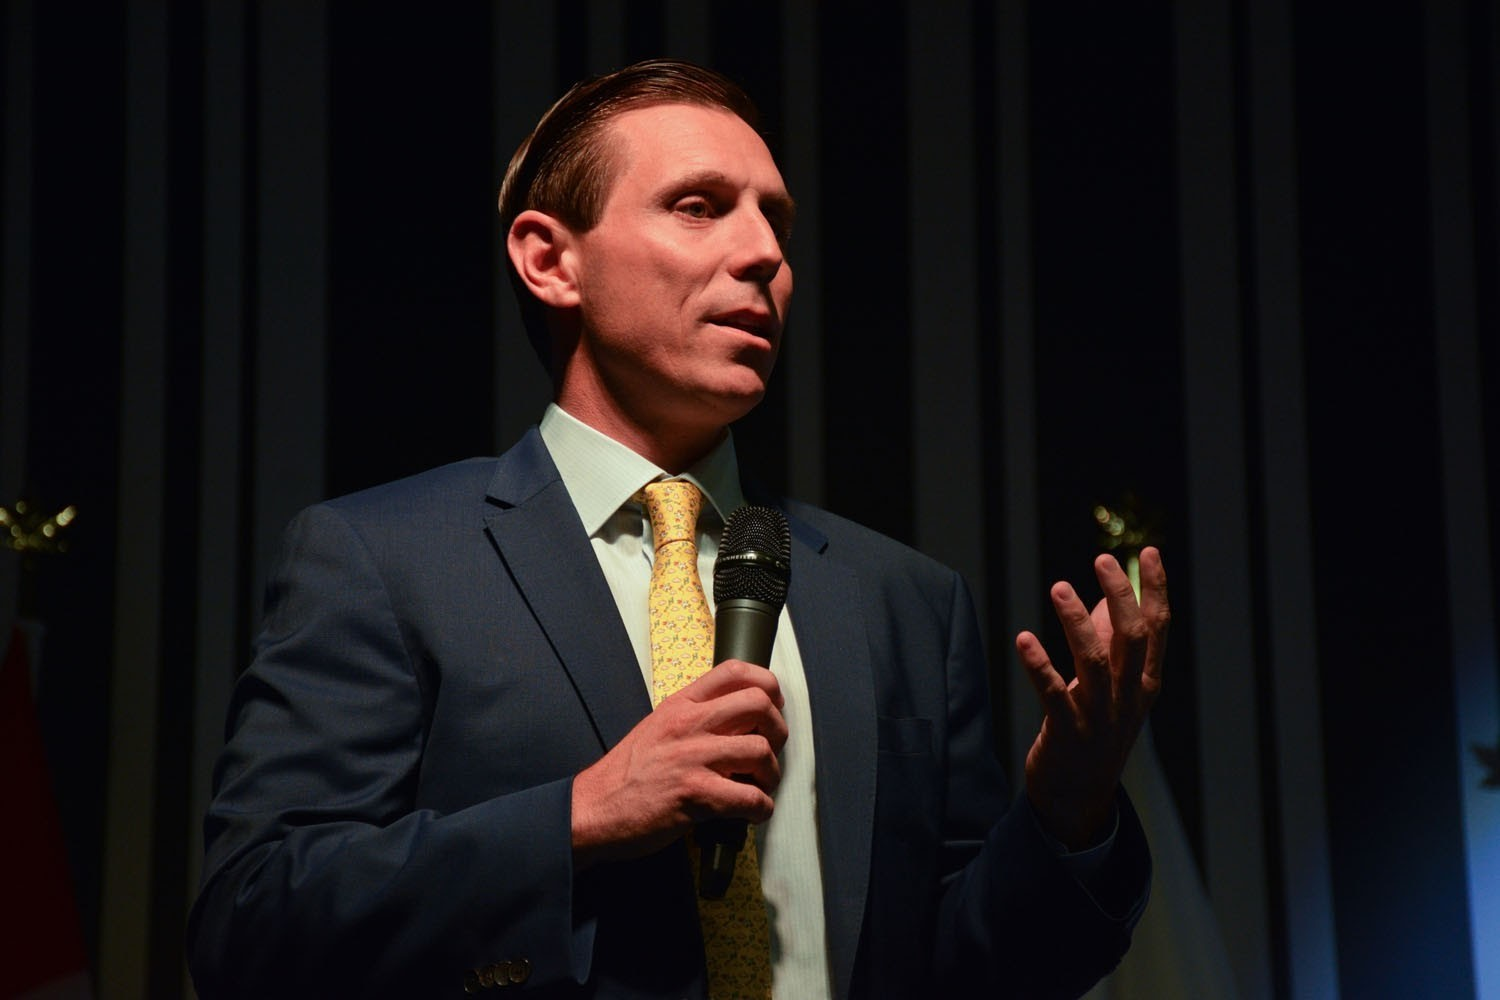 Patrick Brown uses common slur for Brampton, calls it 'Brown-town' but refuses to apologize